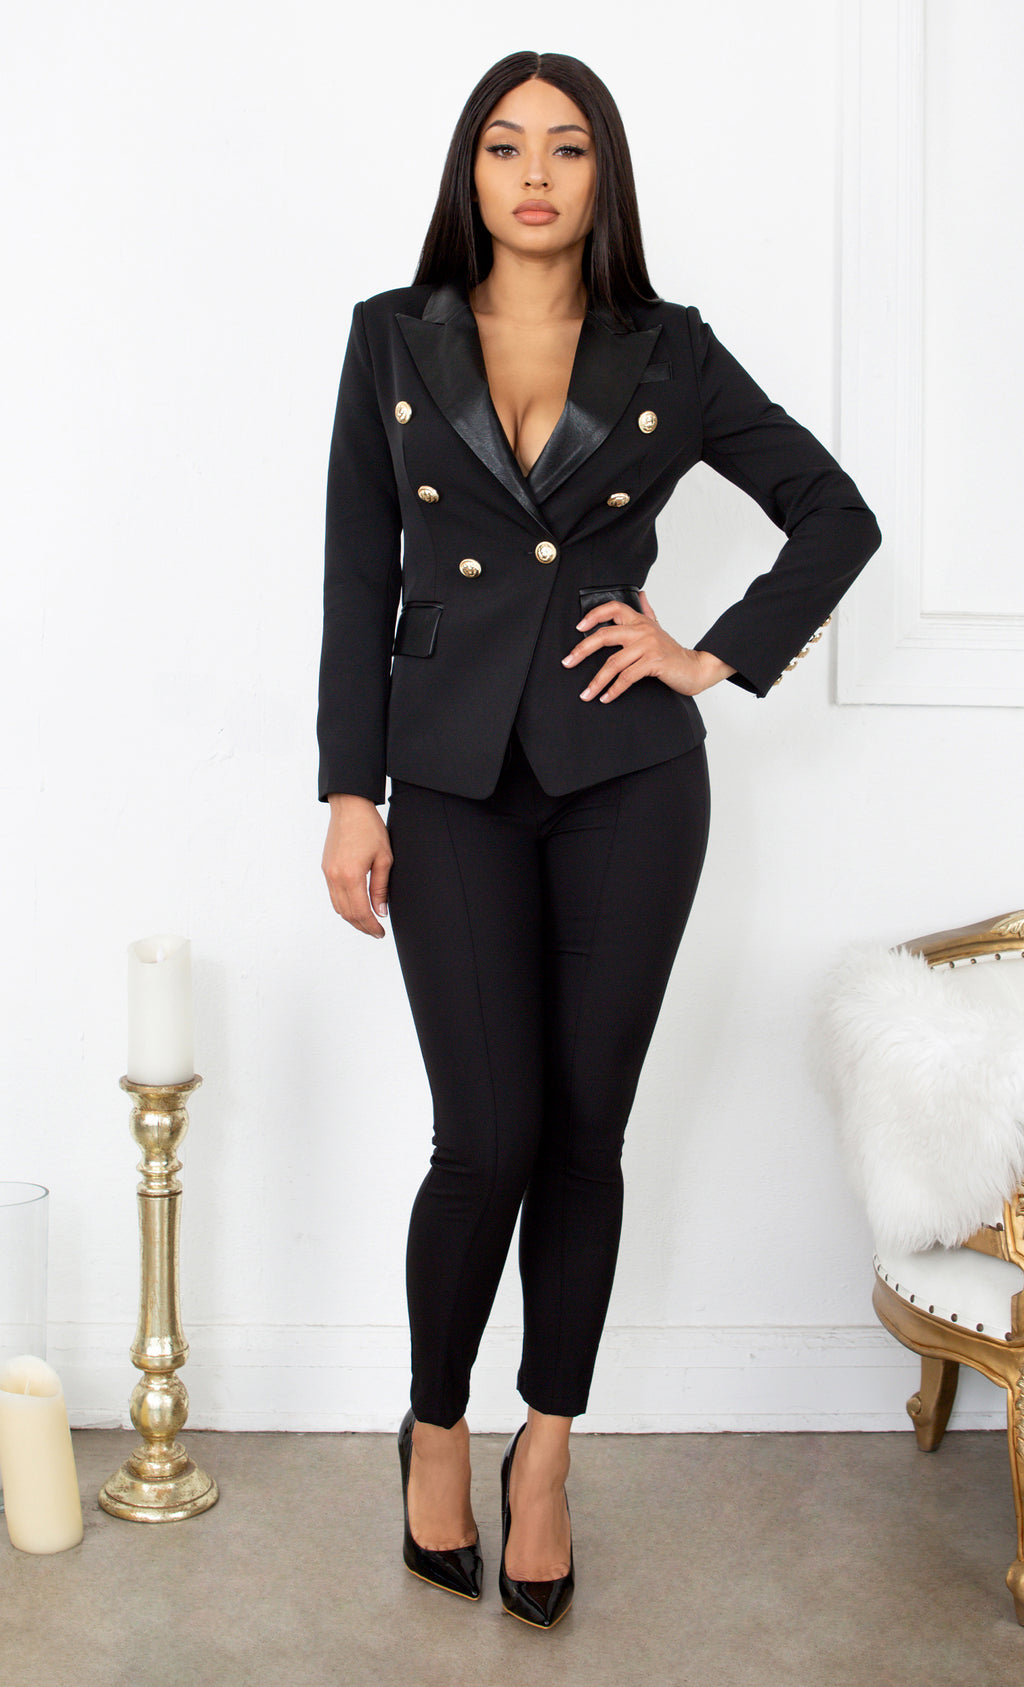 Keeping Focus Faux Leather Lapel Accent Black Gold Button Long Sleeve Blazer Jacket Outerwear